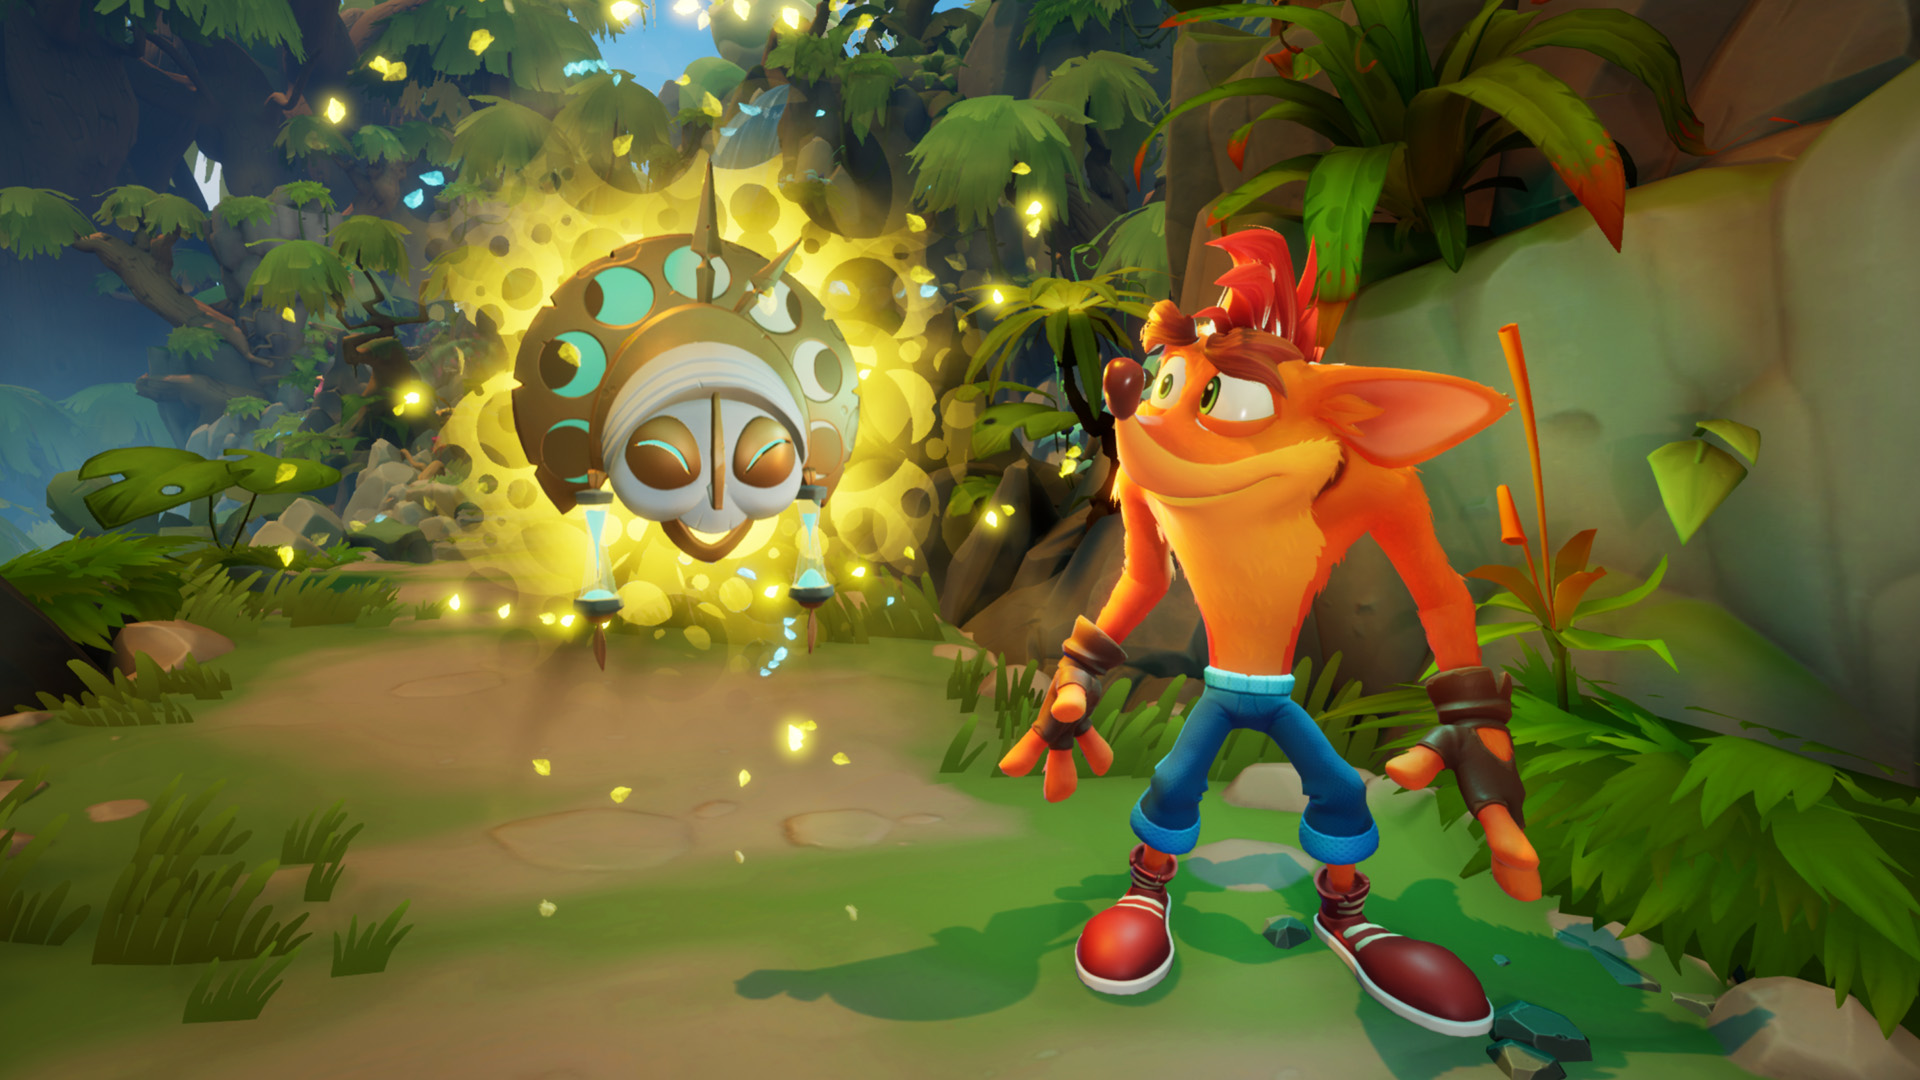 The Art of Crash Bandicoot 4 It's about Time